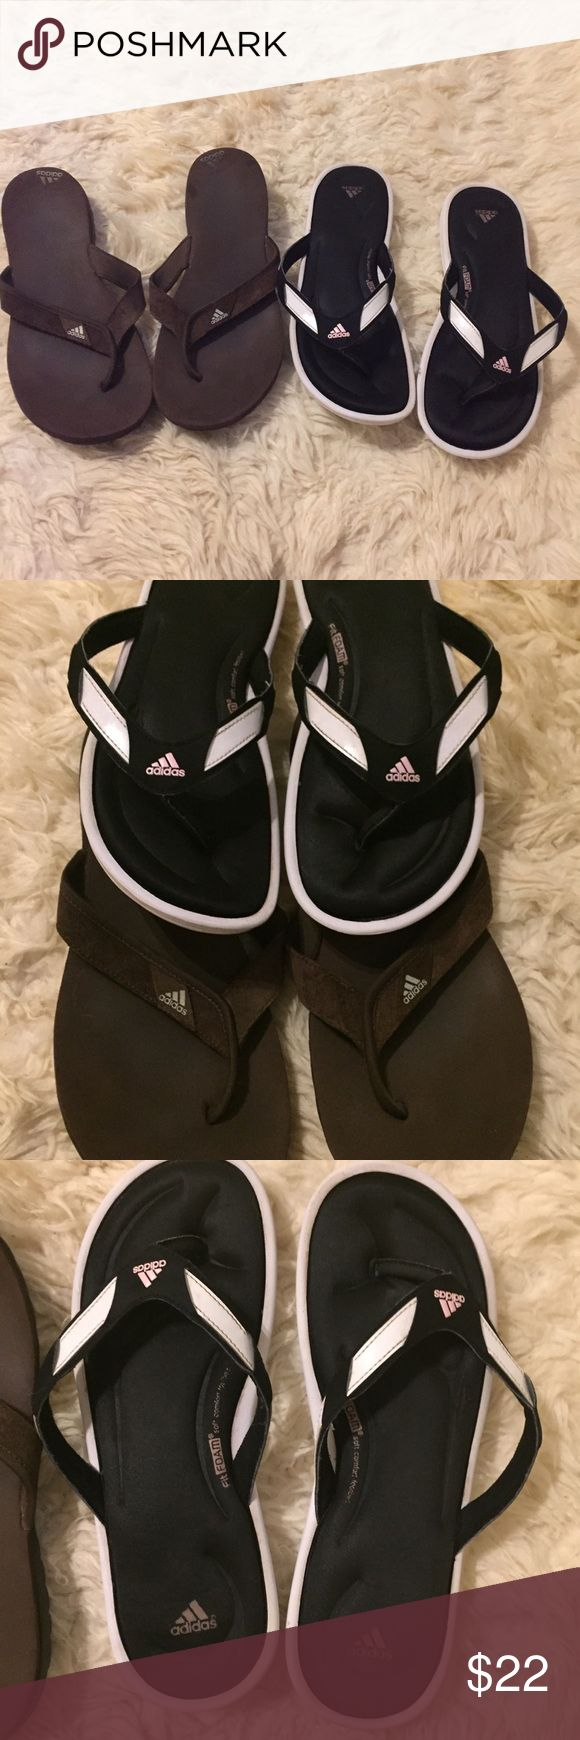 ADIDAS FLIP FLOPS BUNDLE One pair of brown ADIDAS flip flops.  One black/white Fit FOAM soft comfort footbed flip flops.  Pre owned, good condition.  Can't find size but looks like 10/10.5.  Pet/smoke free home adidas Shoes Sandals